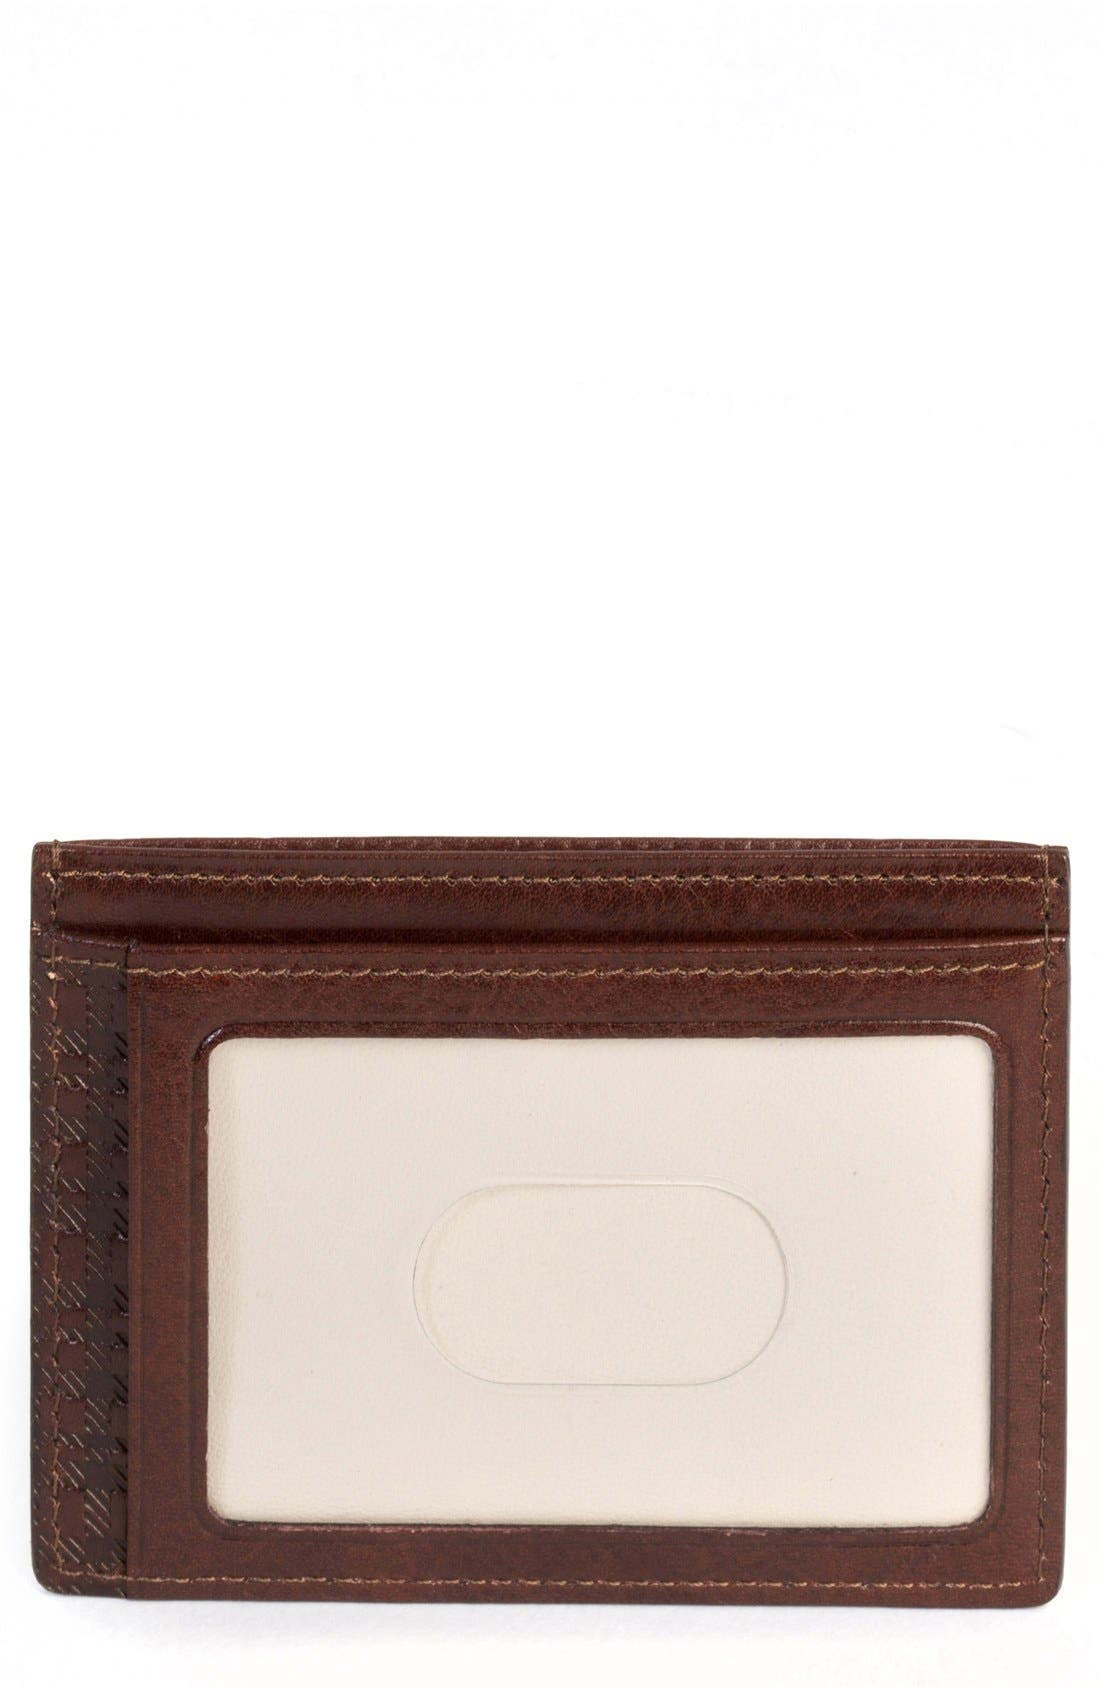 'Becker' Leather Card Case,                             Main thumbnail 1, color,                             215